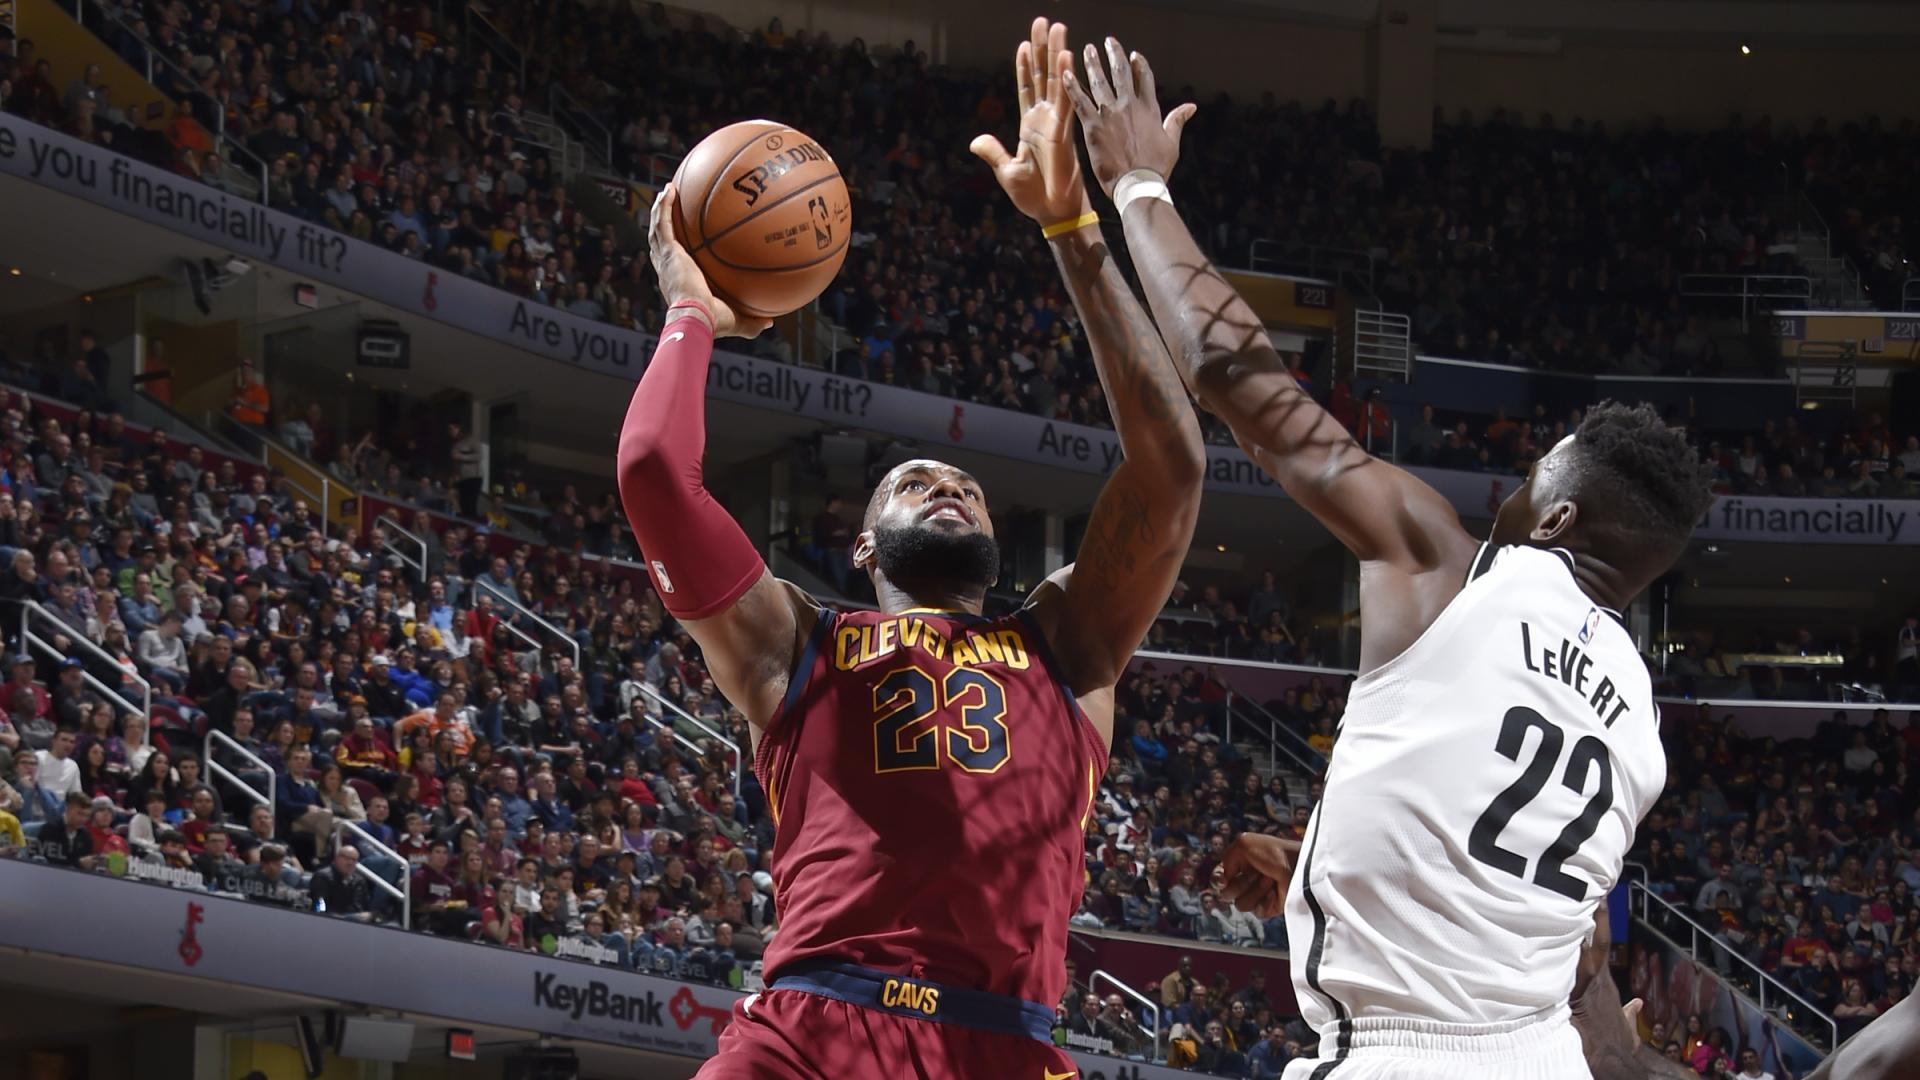 Stong quote by lebron james on the bond with his teammates - Lebron Scores 23 In Fourth Quarter Of Cavs Win Over Nets